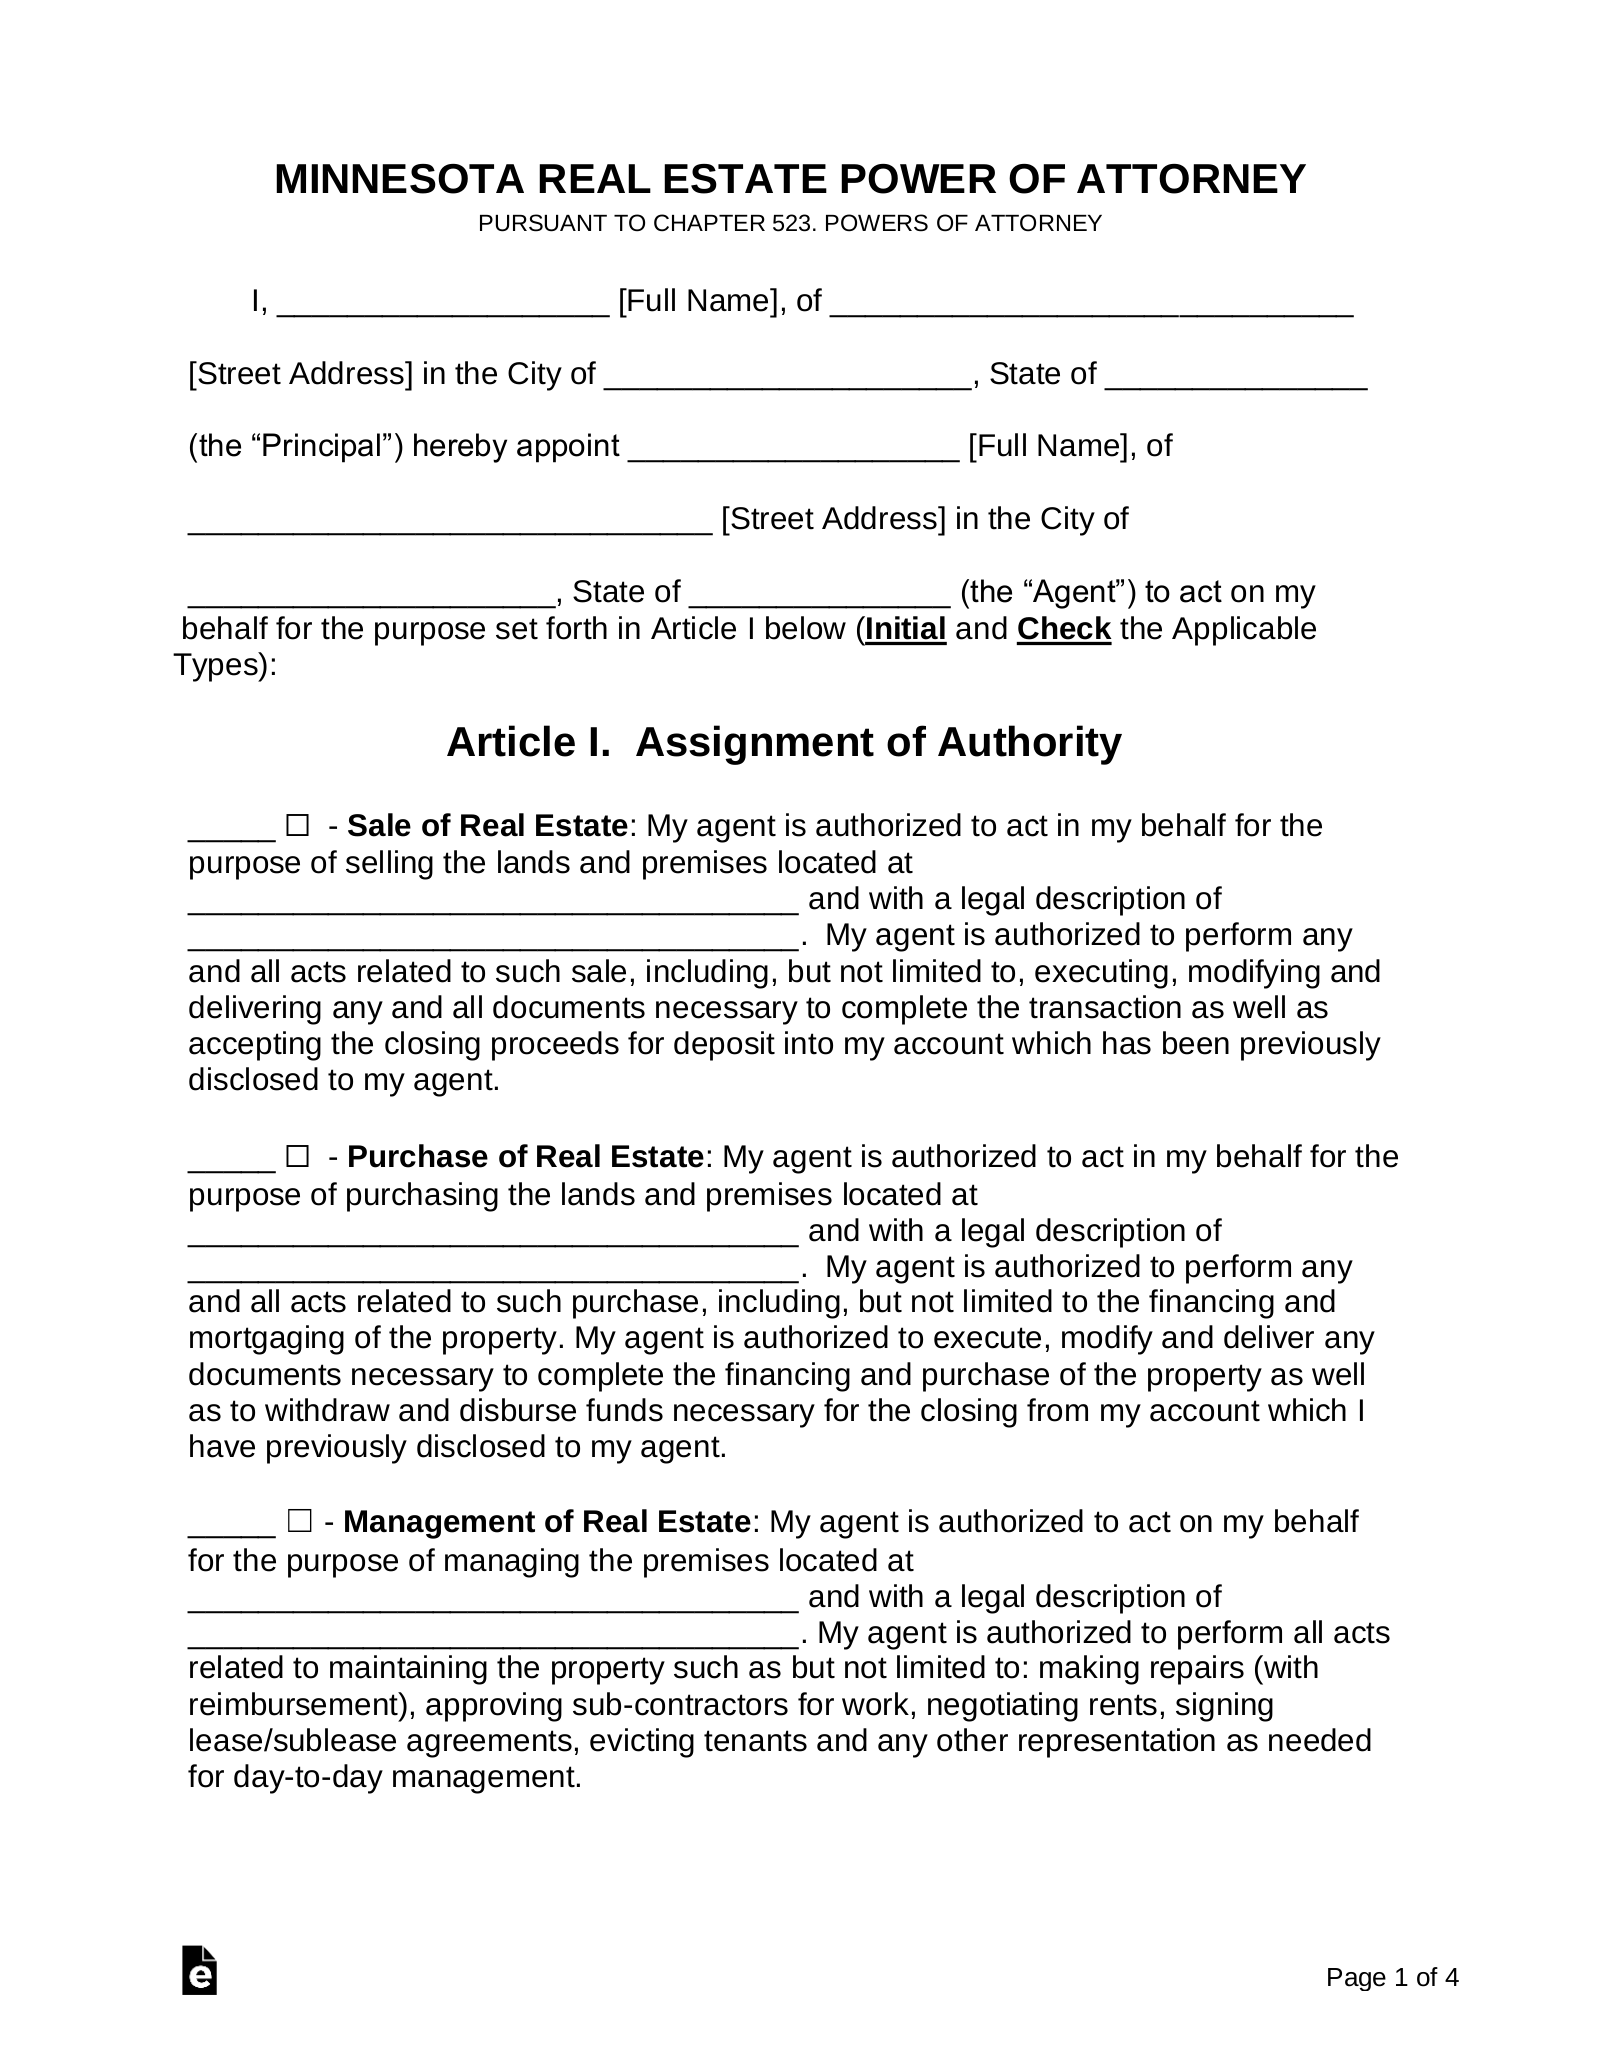 power of attorney form mn  Free Minnesota Real Estate Power of Attorney Form - PDF ...